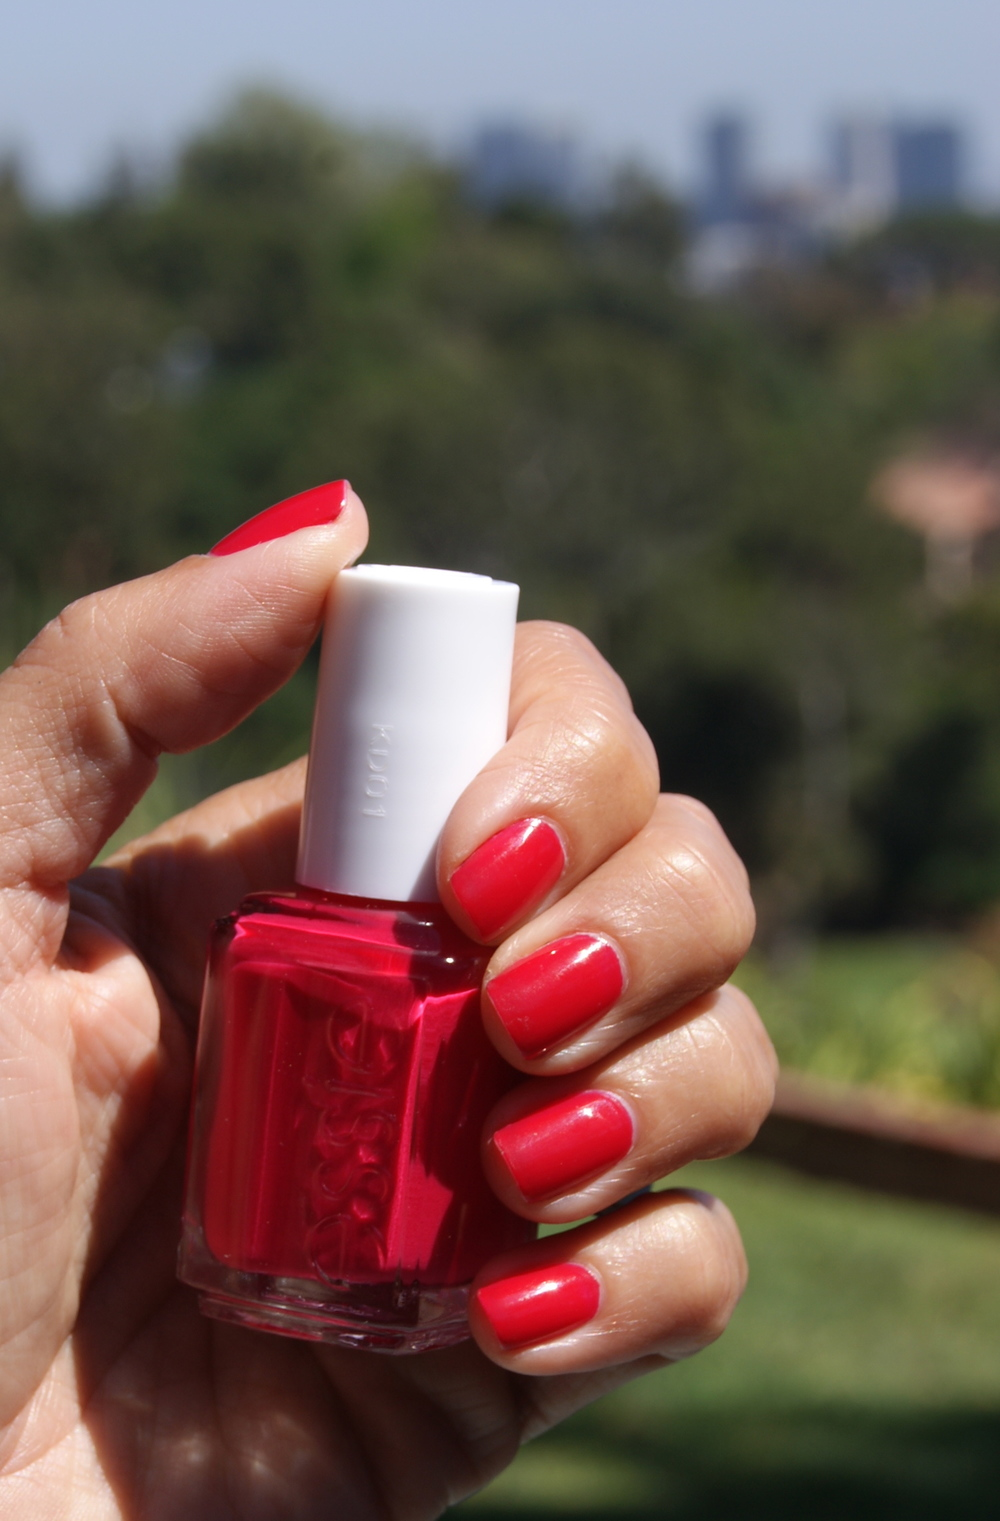 Nail color by Essie: Shade is Style Hunter, $8.50